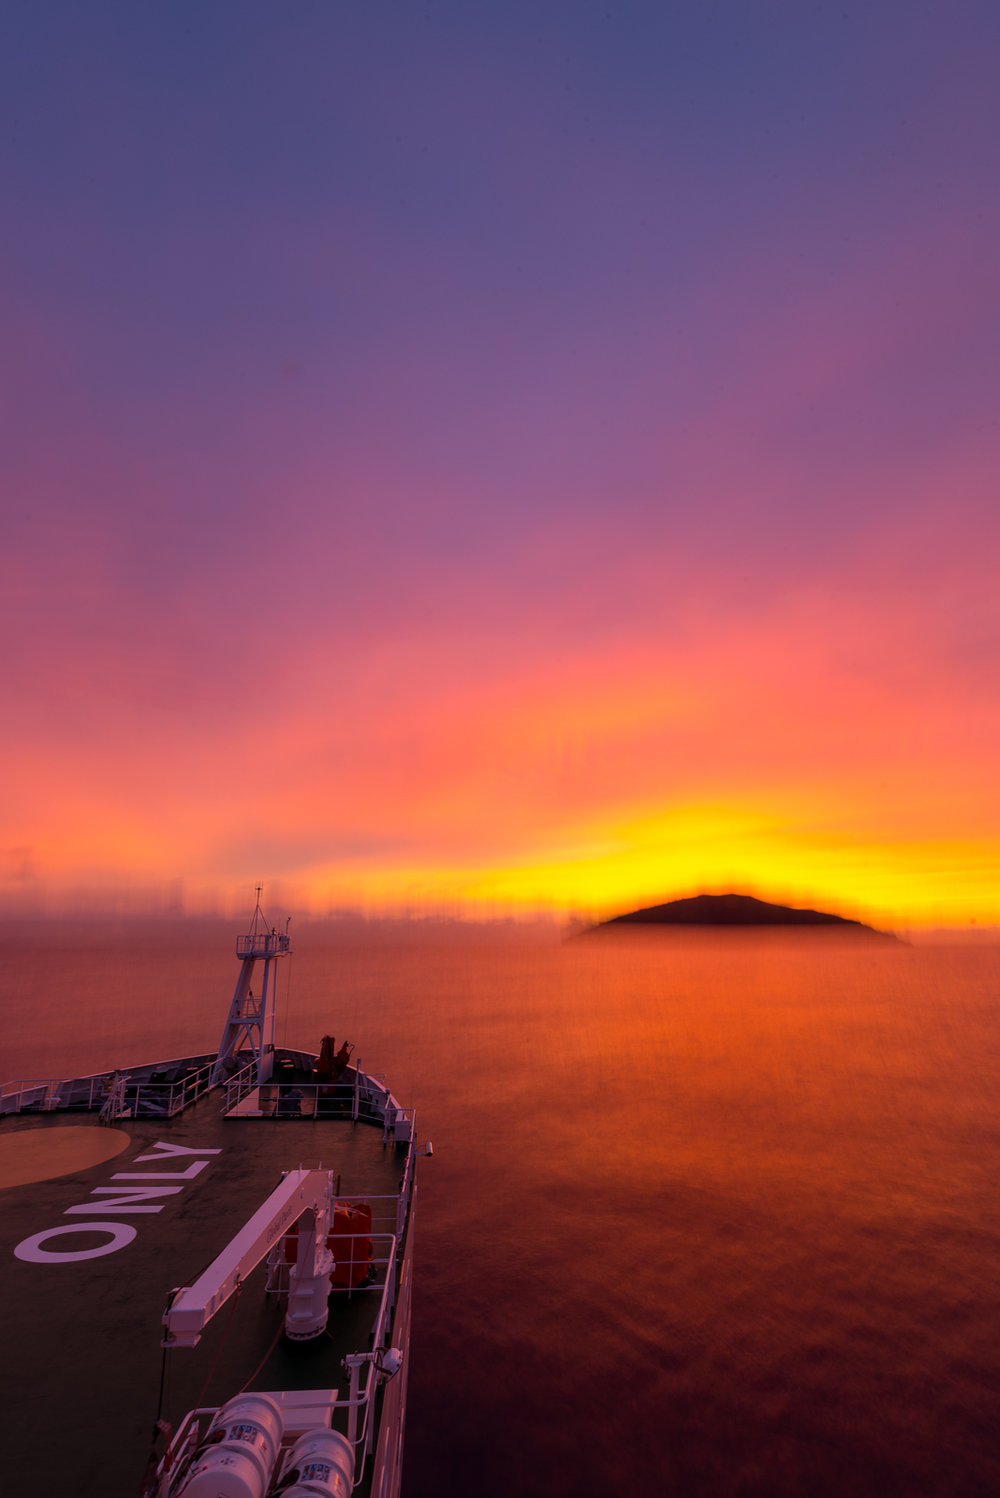 Long exposure of Macauley Island in sunrise.